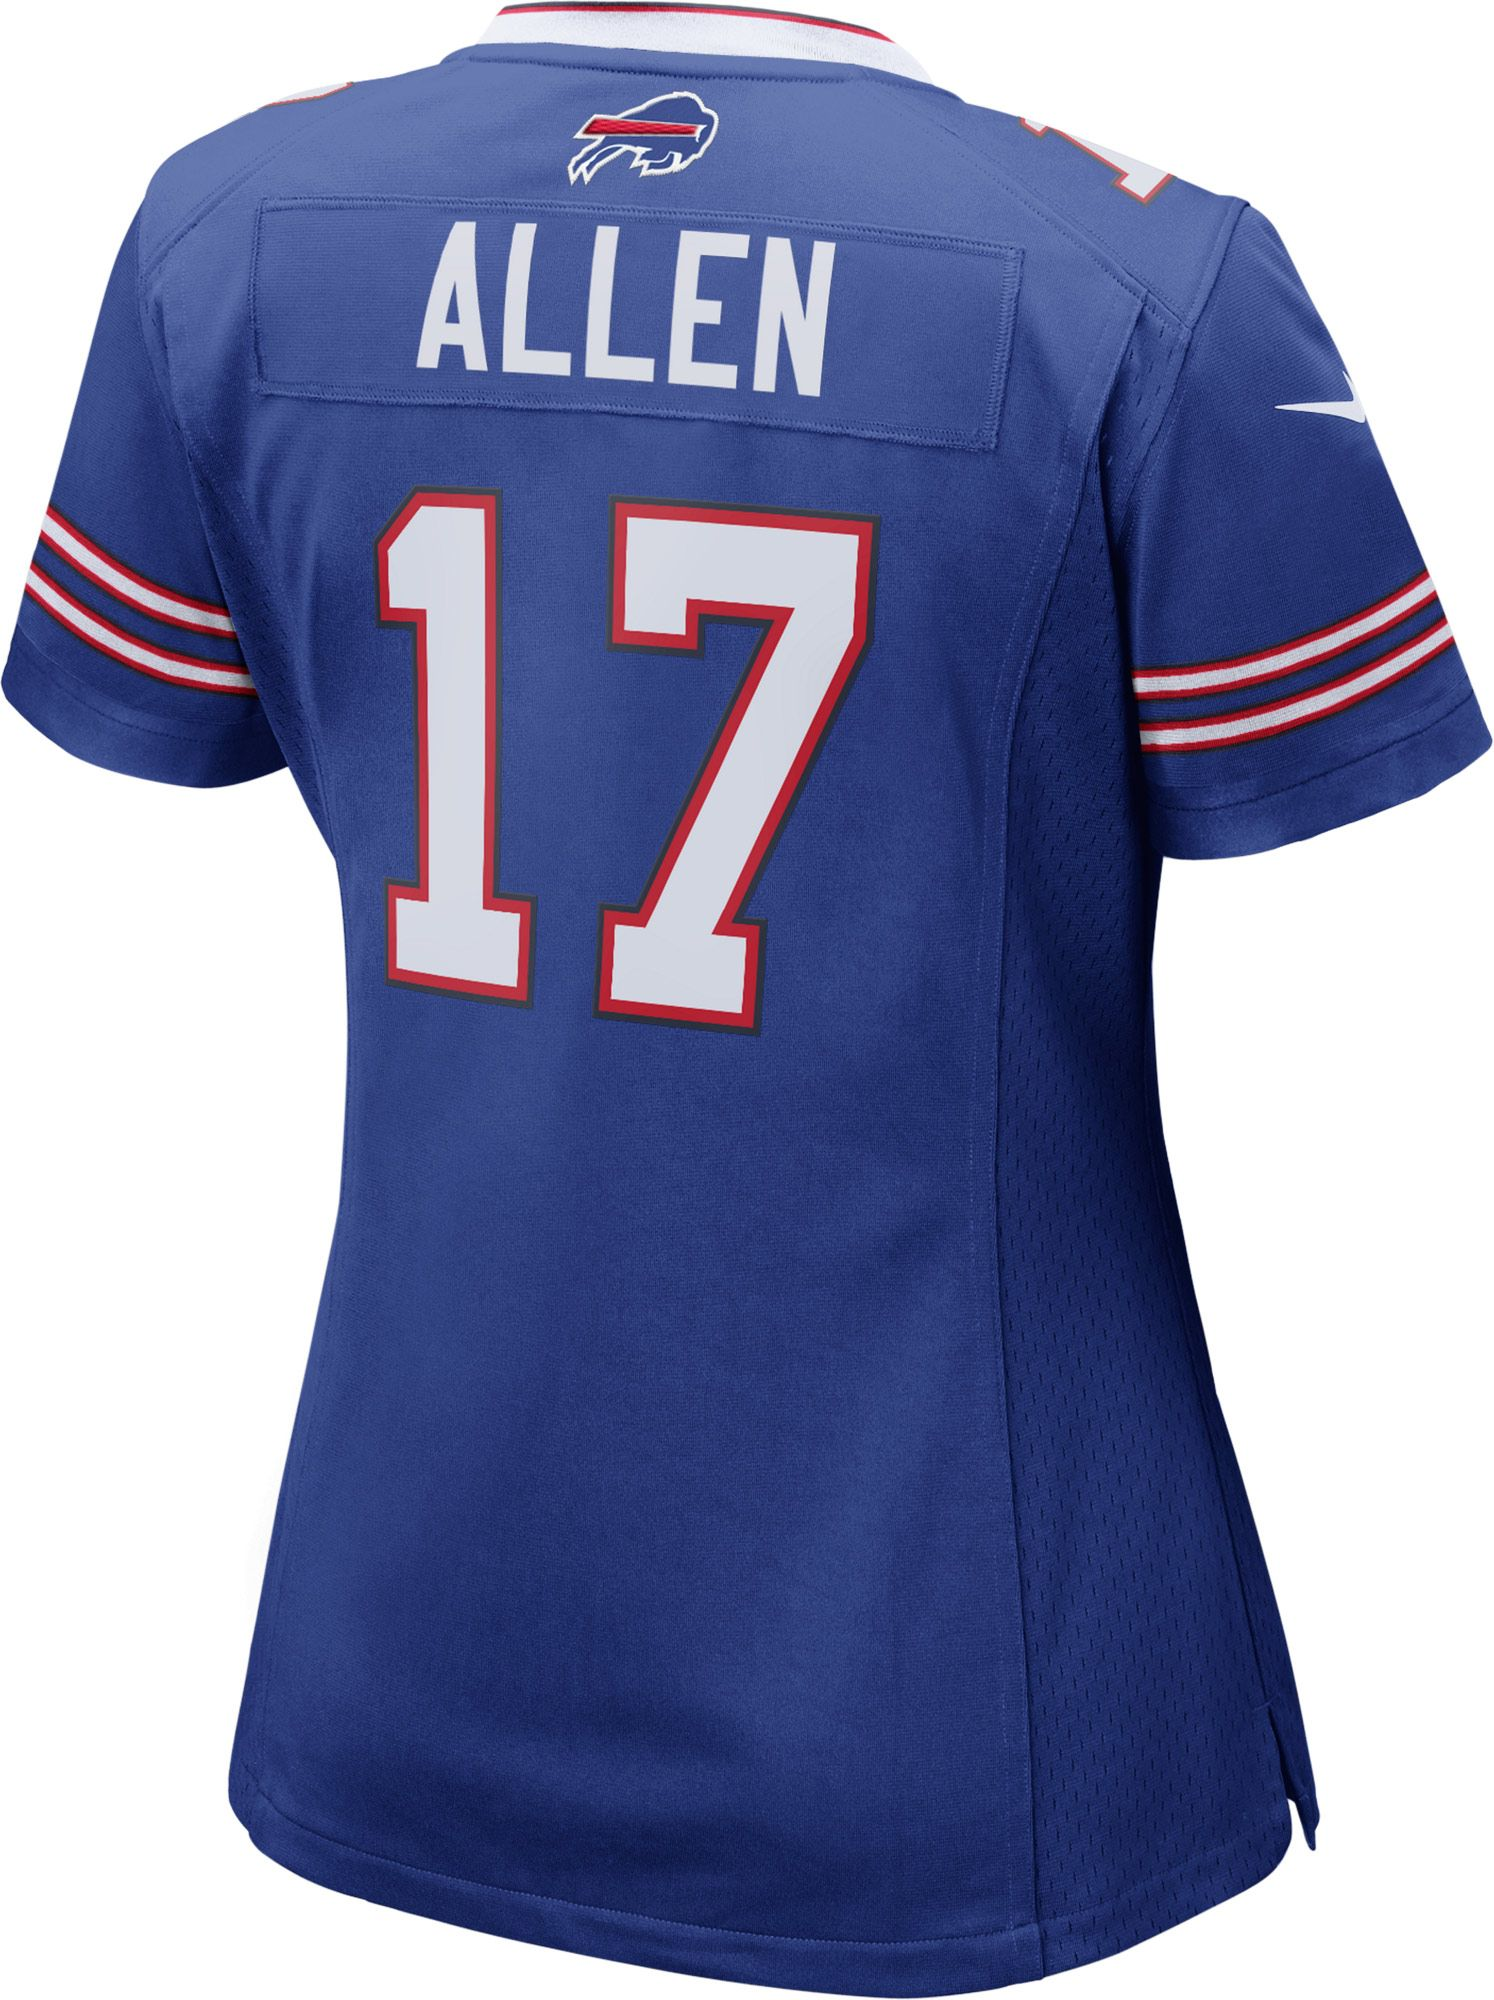 buffalo bills game jersey